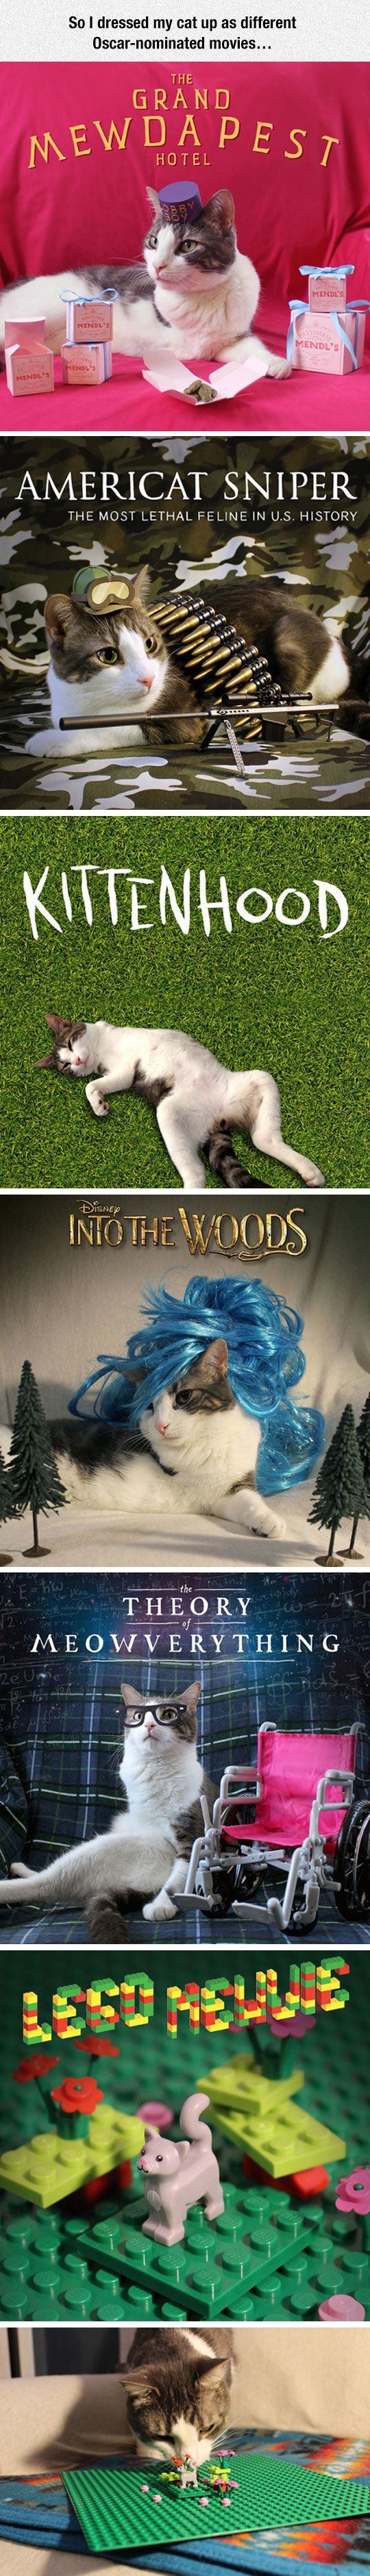 Oscar-Nominated Movies With Cats